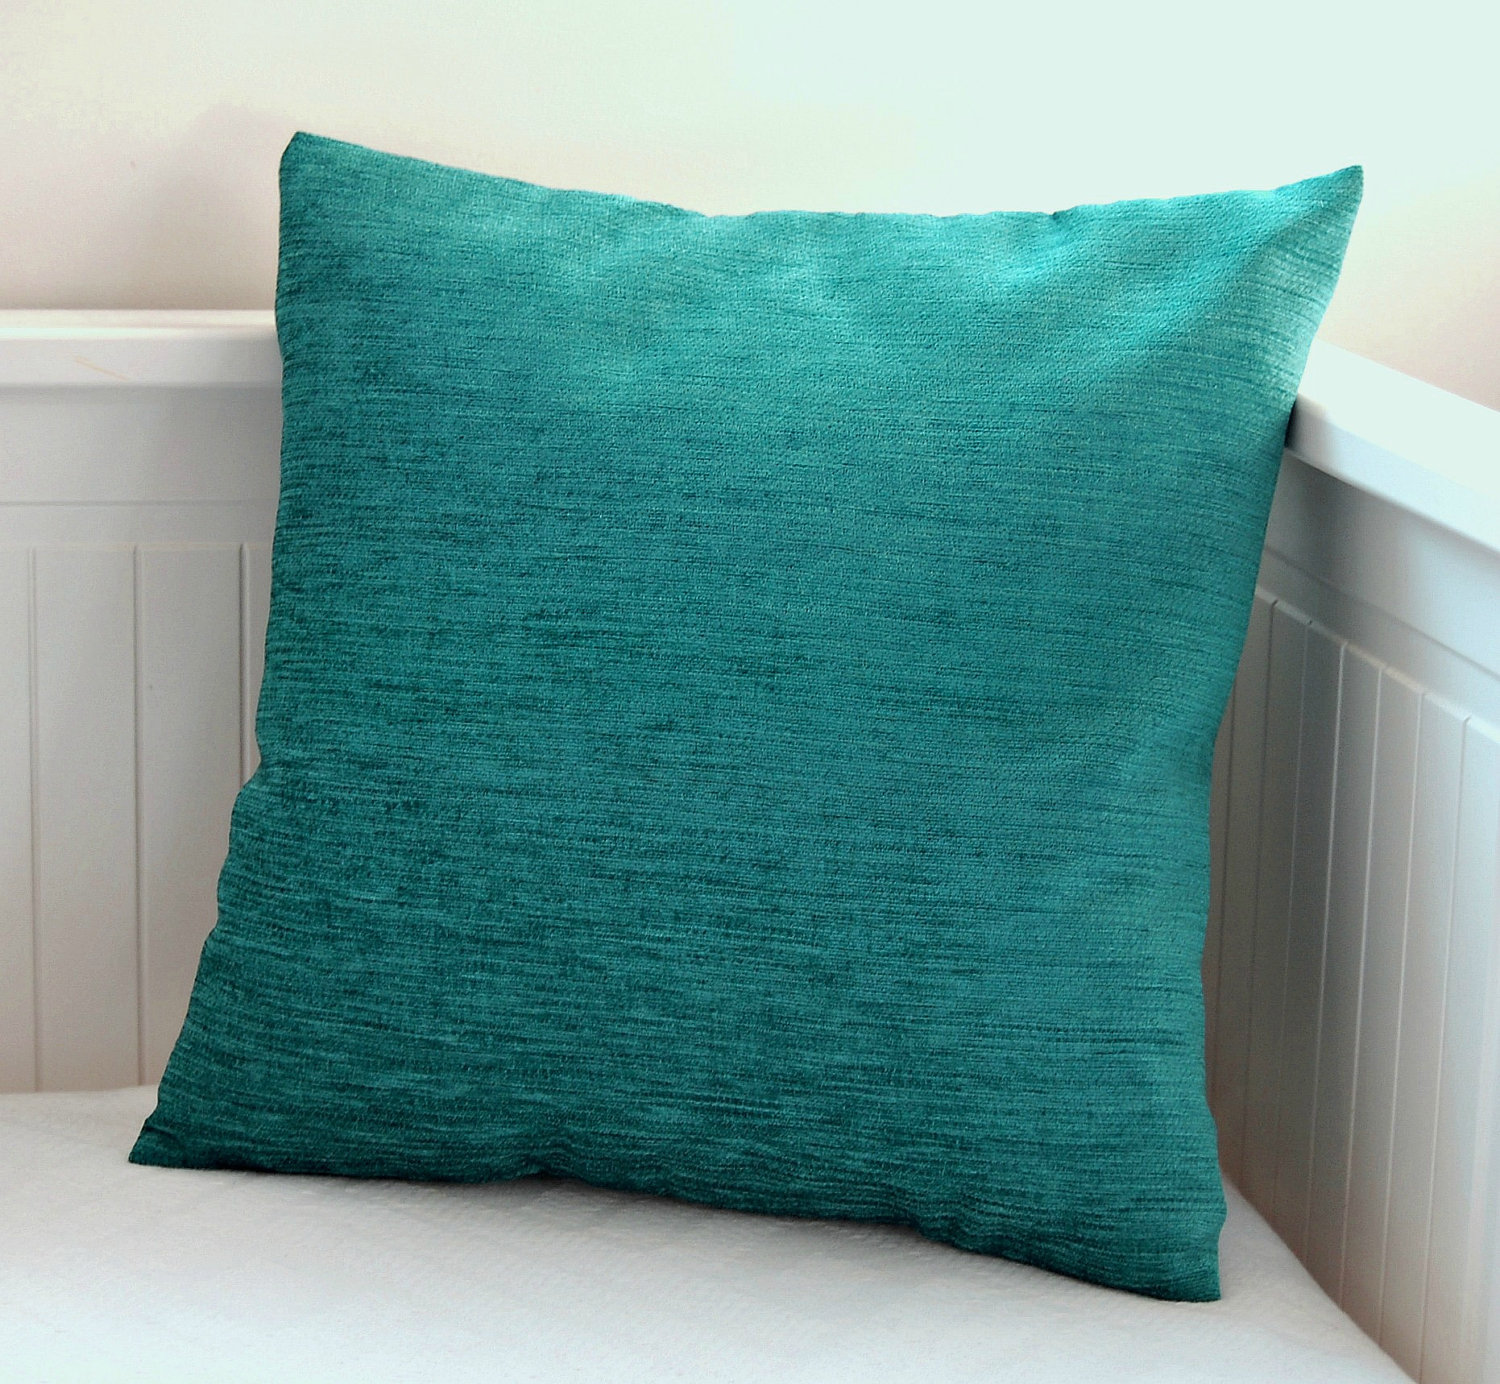 Awesome Cushions teal throw pillows for Queen bed size king bedsize or sectional sofa also wicker rattan chairs for living room accesories parts furniture ideas